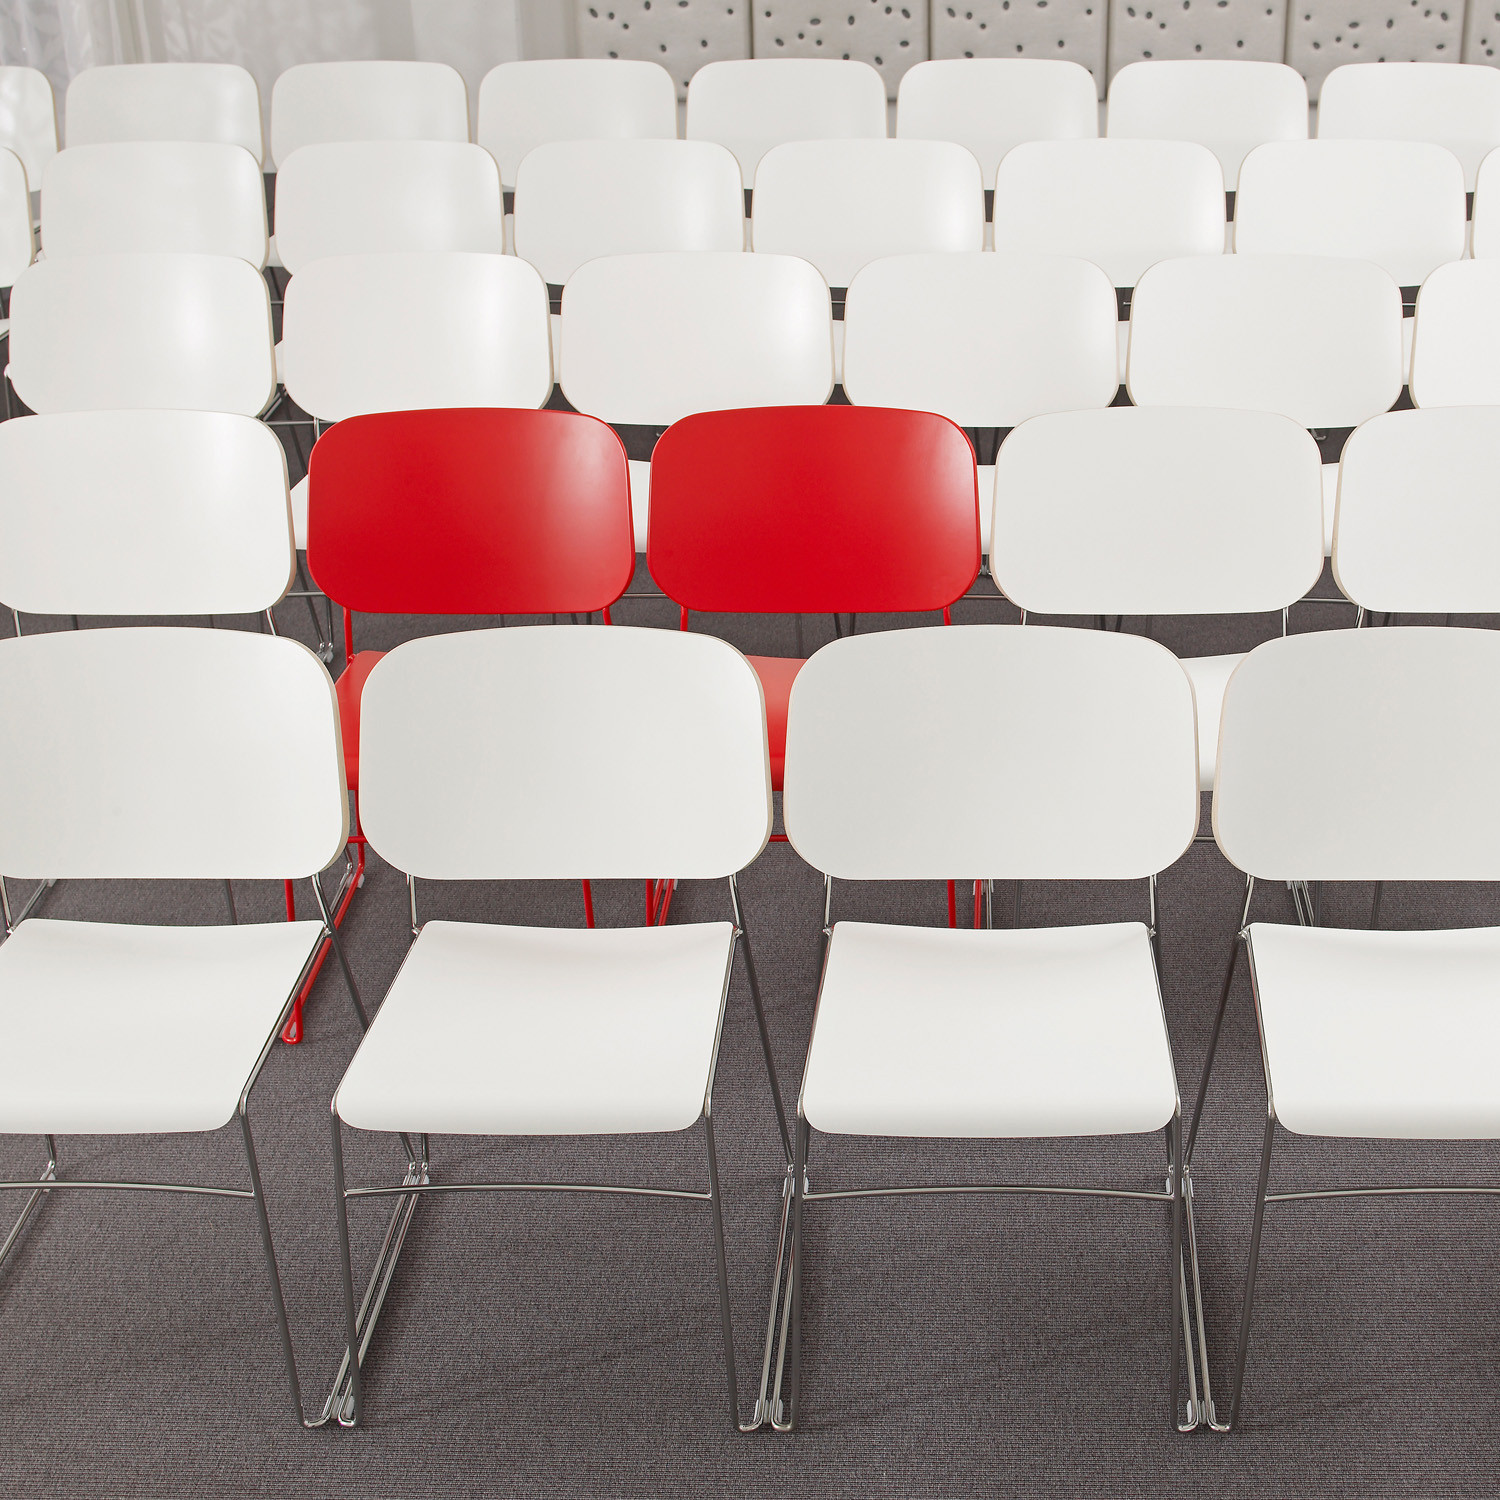 Lite Conference Chair by Offect